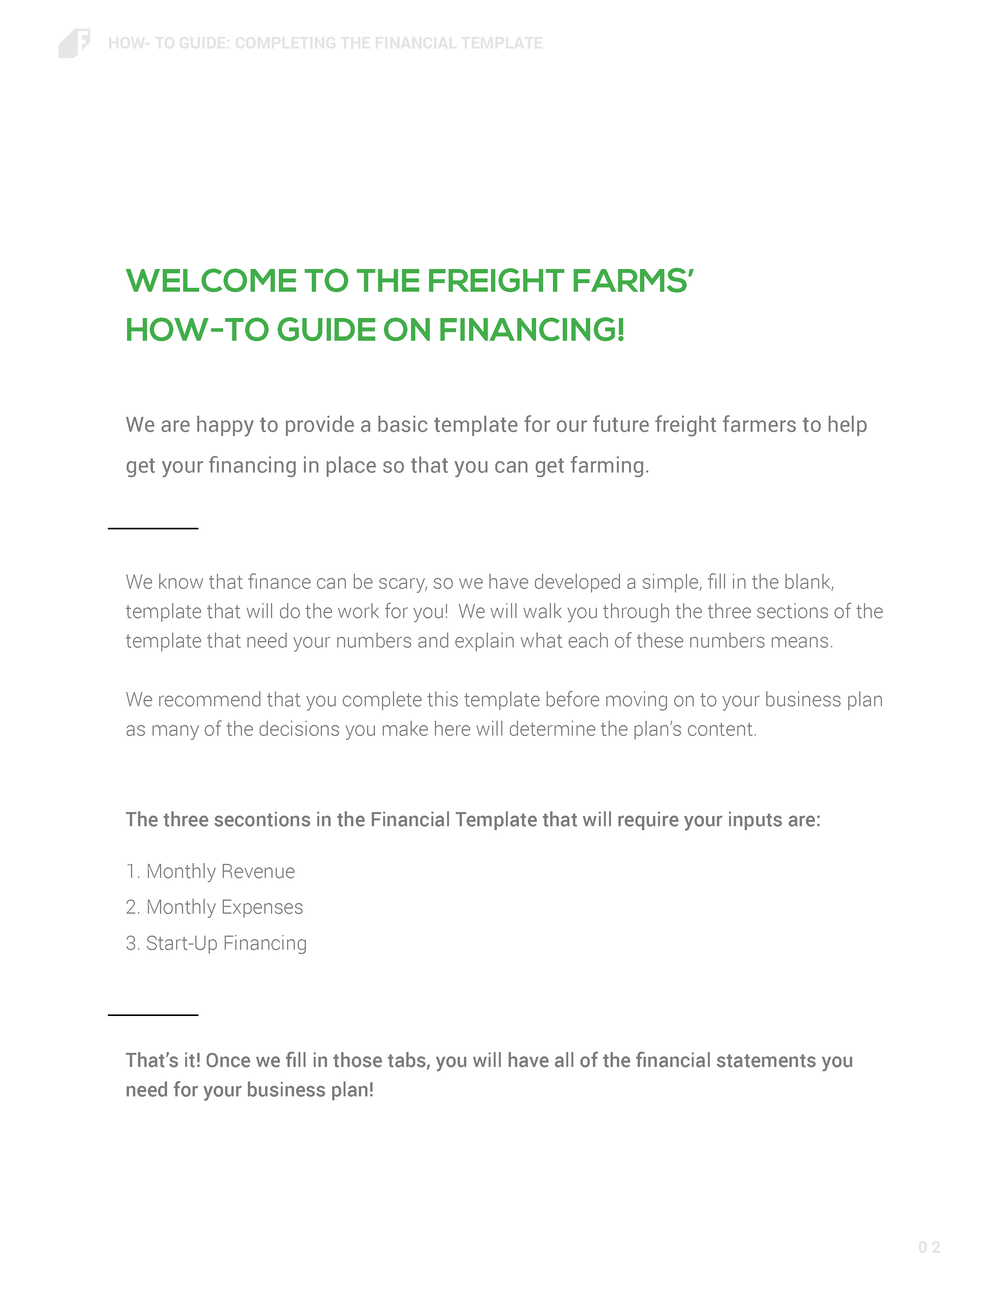 Booklet Preview_Finance-02.png